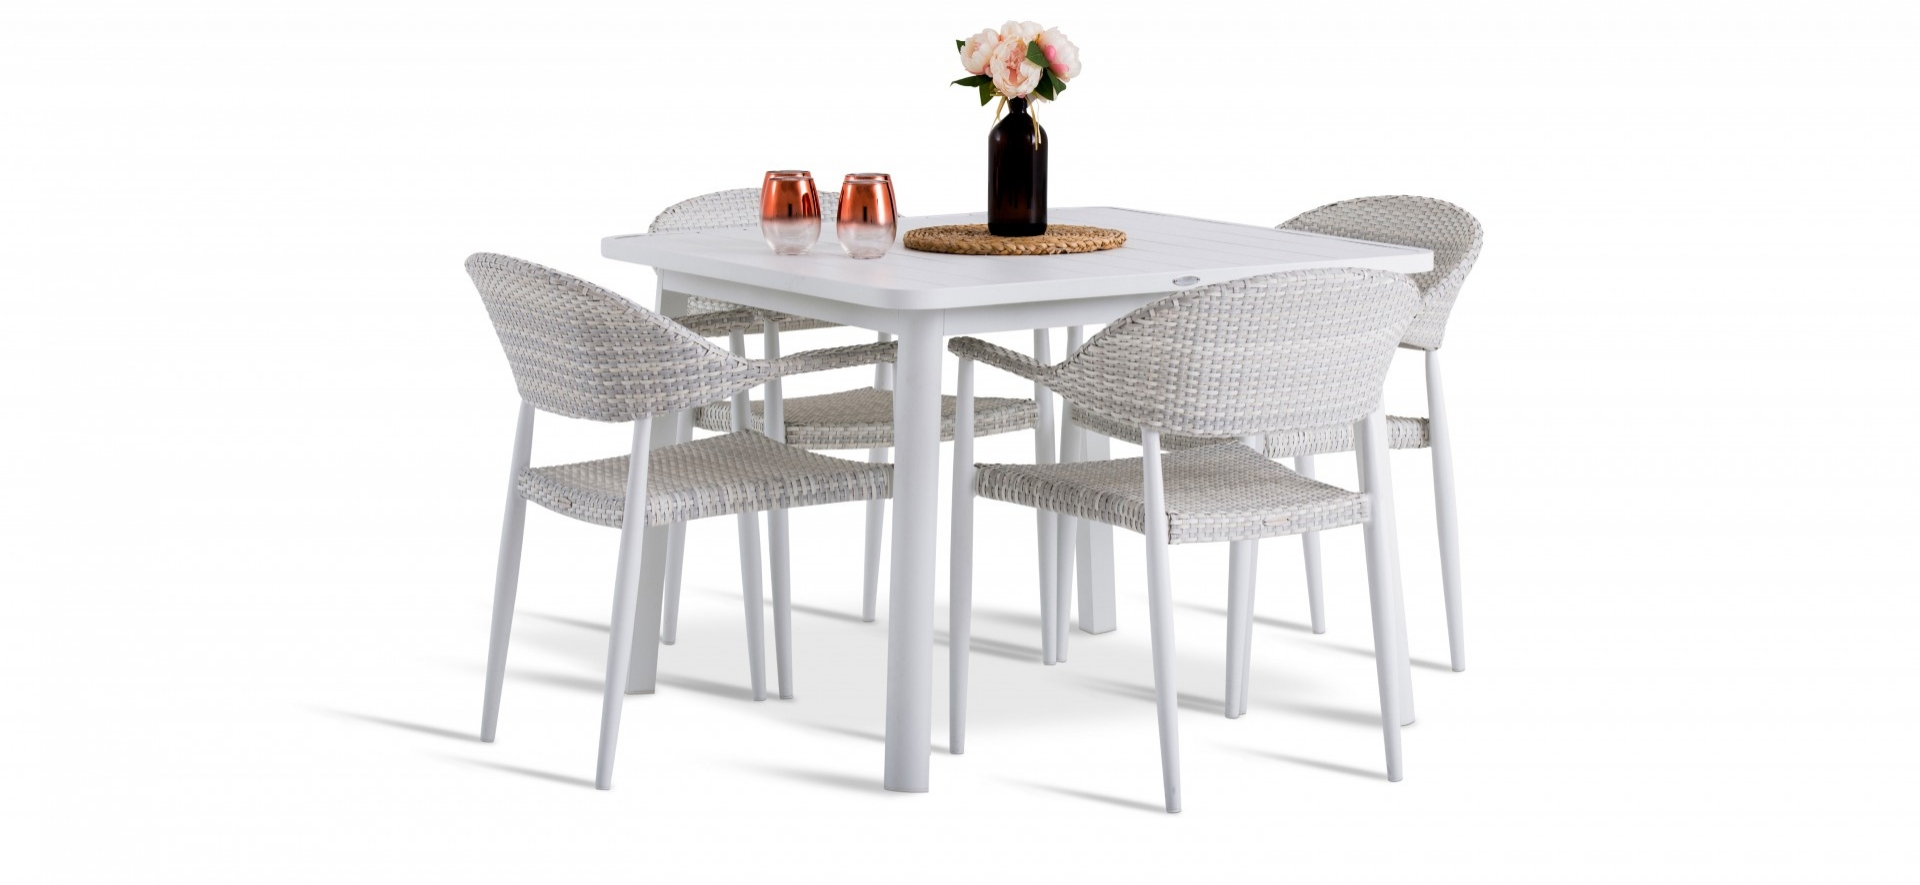 Rio Outdoor Chairs with White Seat Table